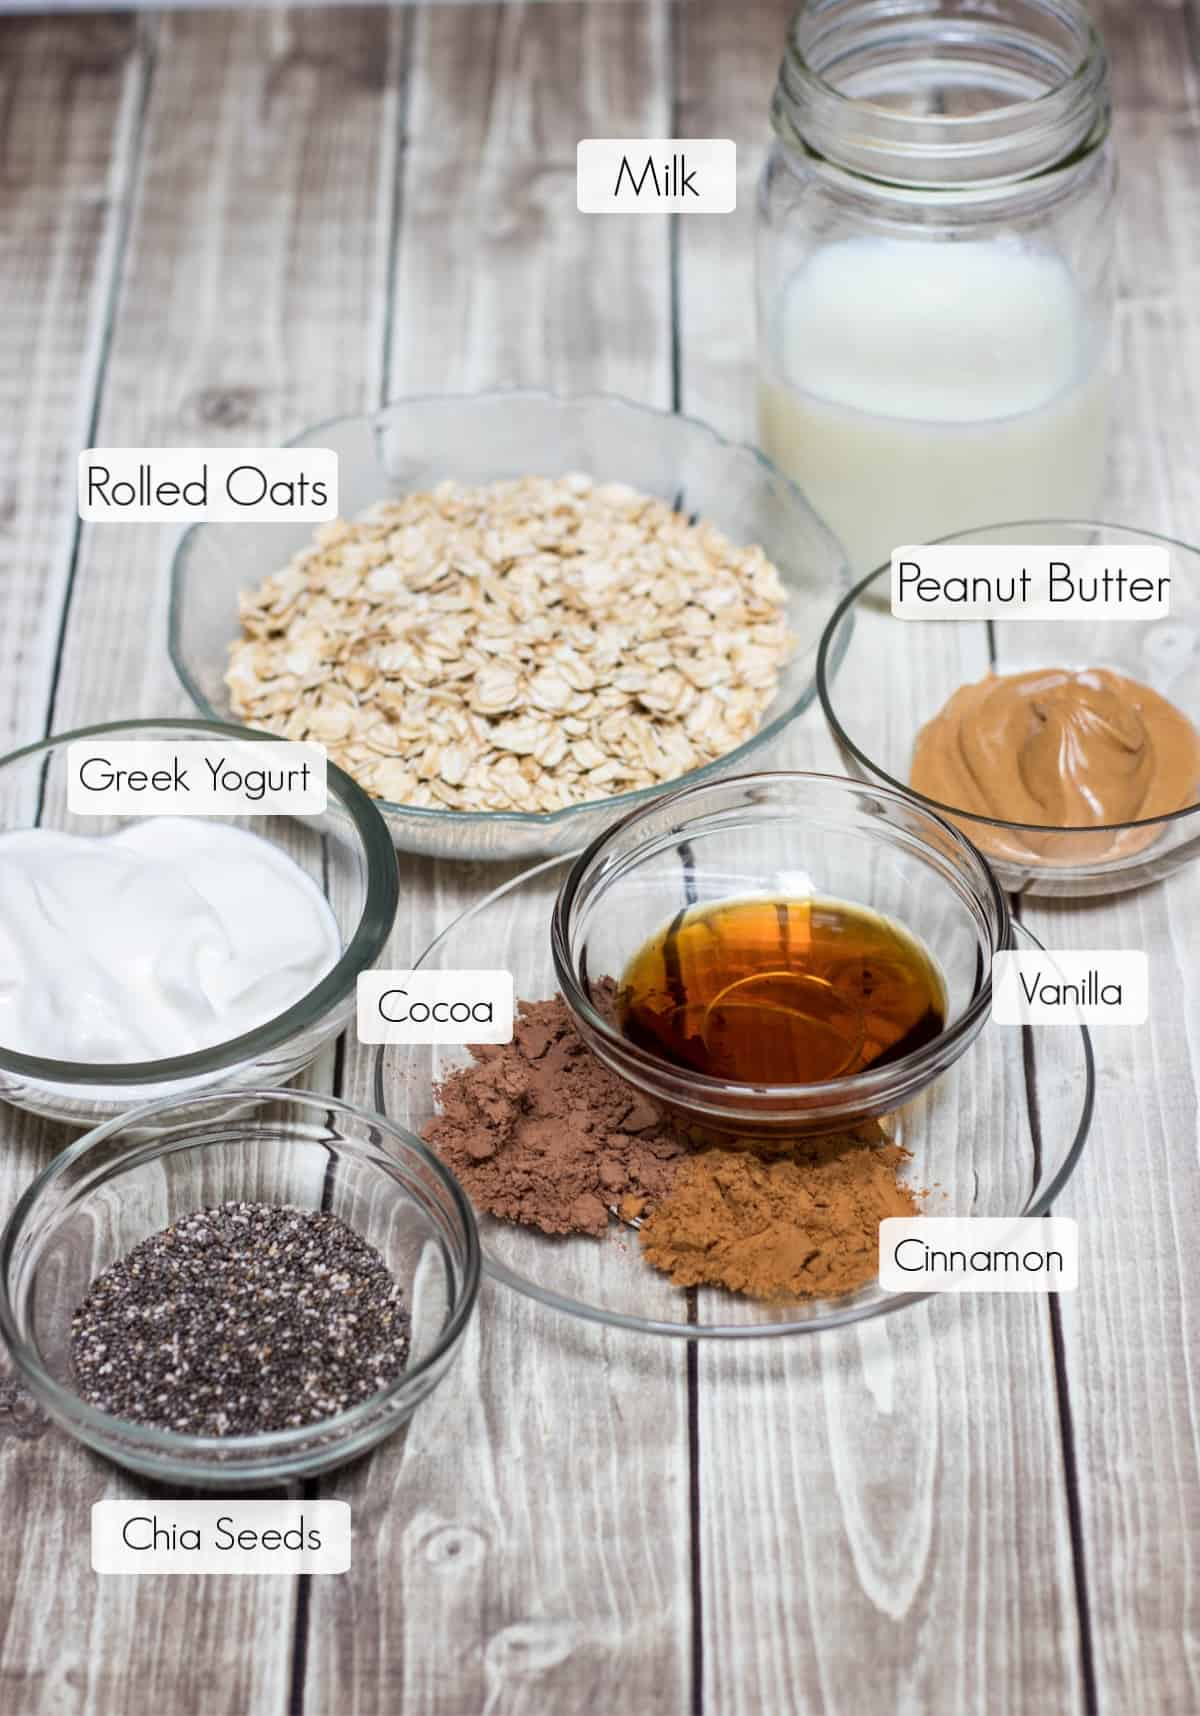 Image of labeled ingredients in bowls for Cinnamon Chocolate Peanut Butter Overnight Oats.